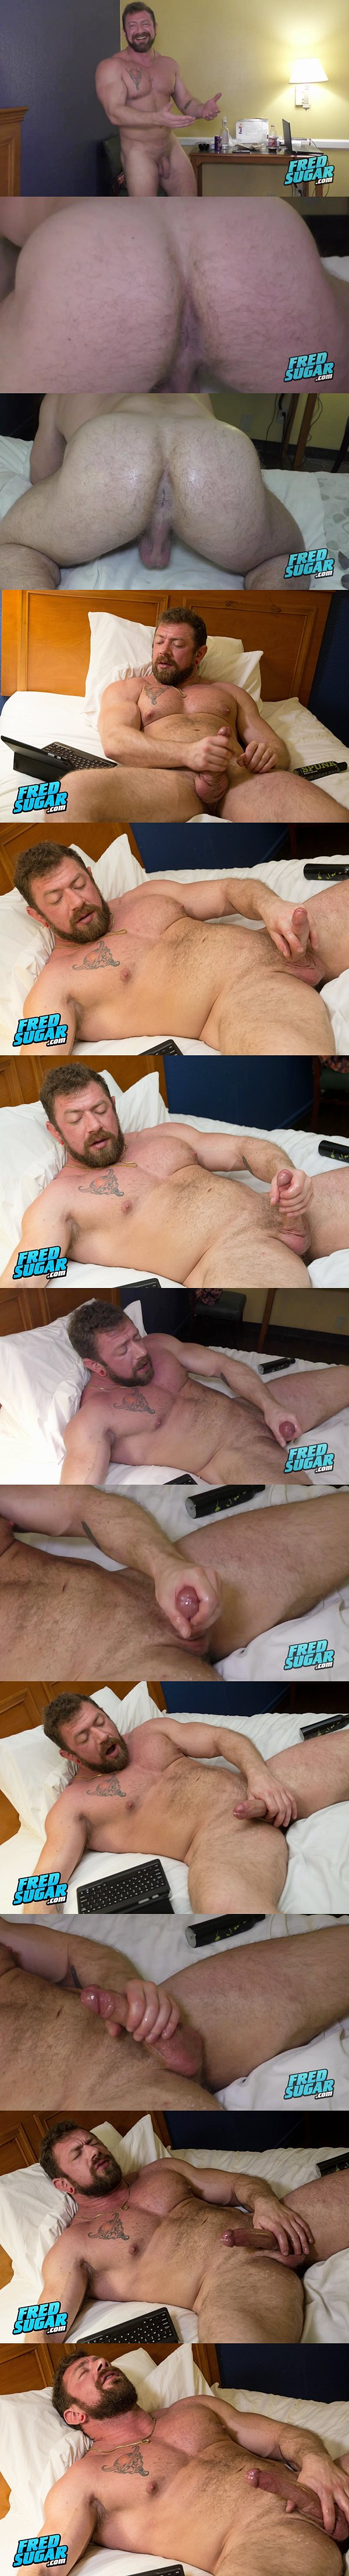 Sexy bearded straight muscle man Viking Strong reveals his virgin manhole before he strokes the white jizz out of his hard pole in Hairy Viking Strong at Fredsugar